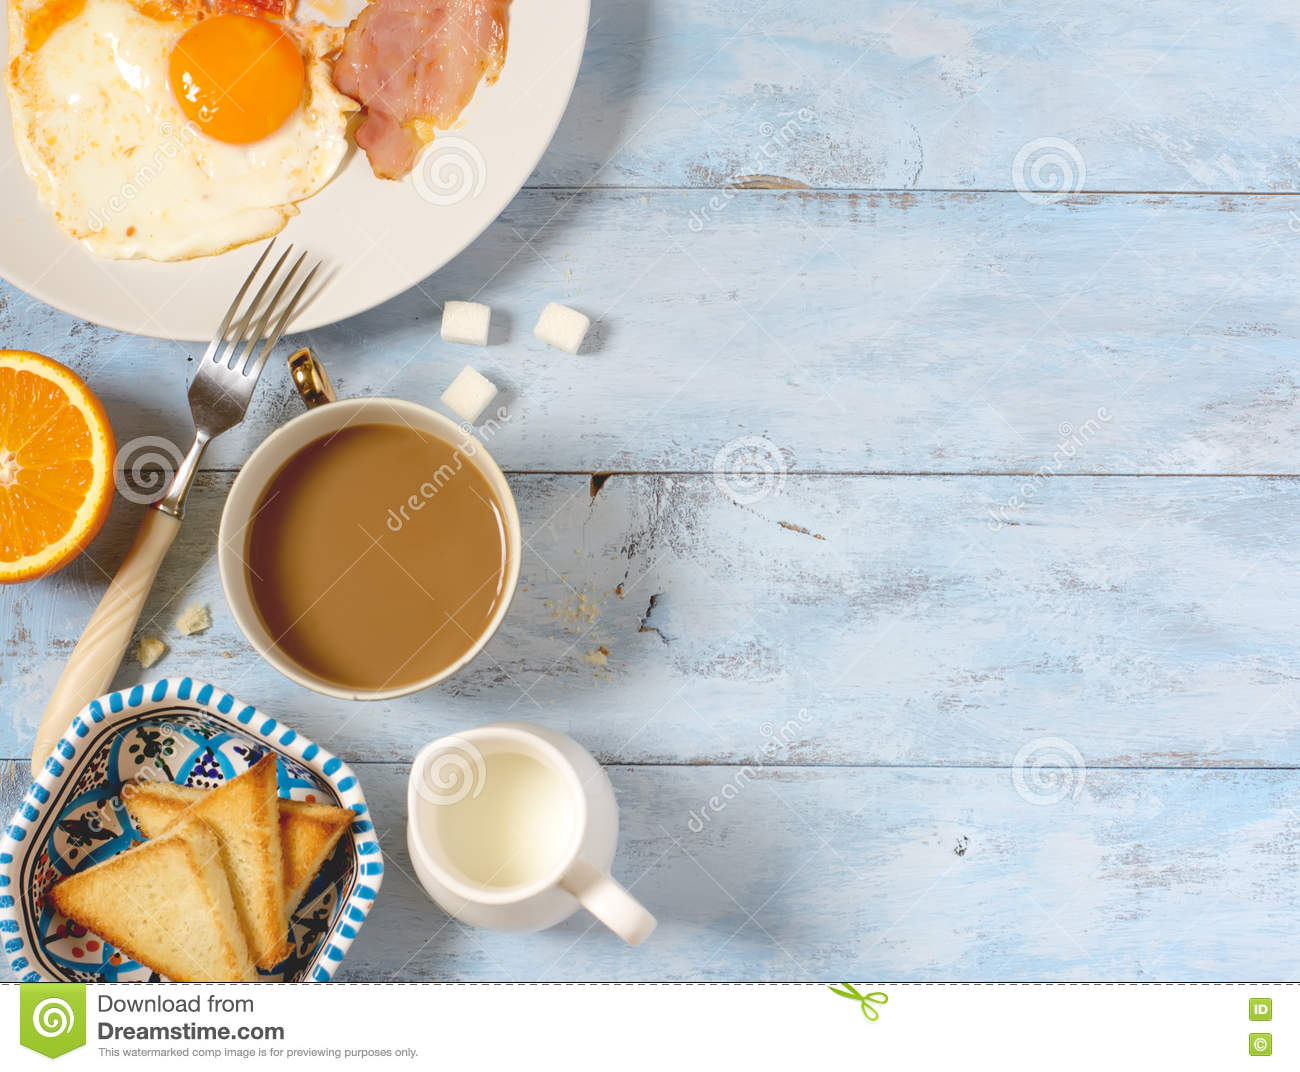 Background Breakfast Fried Eggs, Coffee And Toast Stock Photo - Image: 79157933